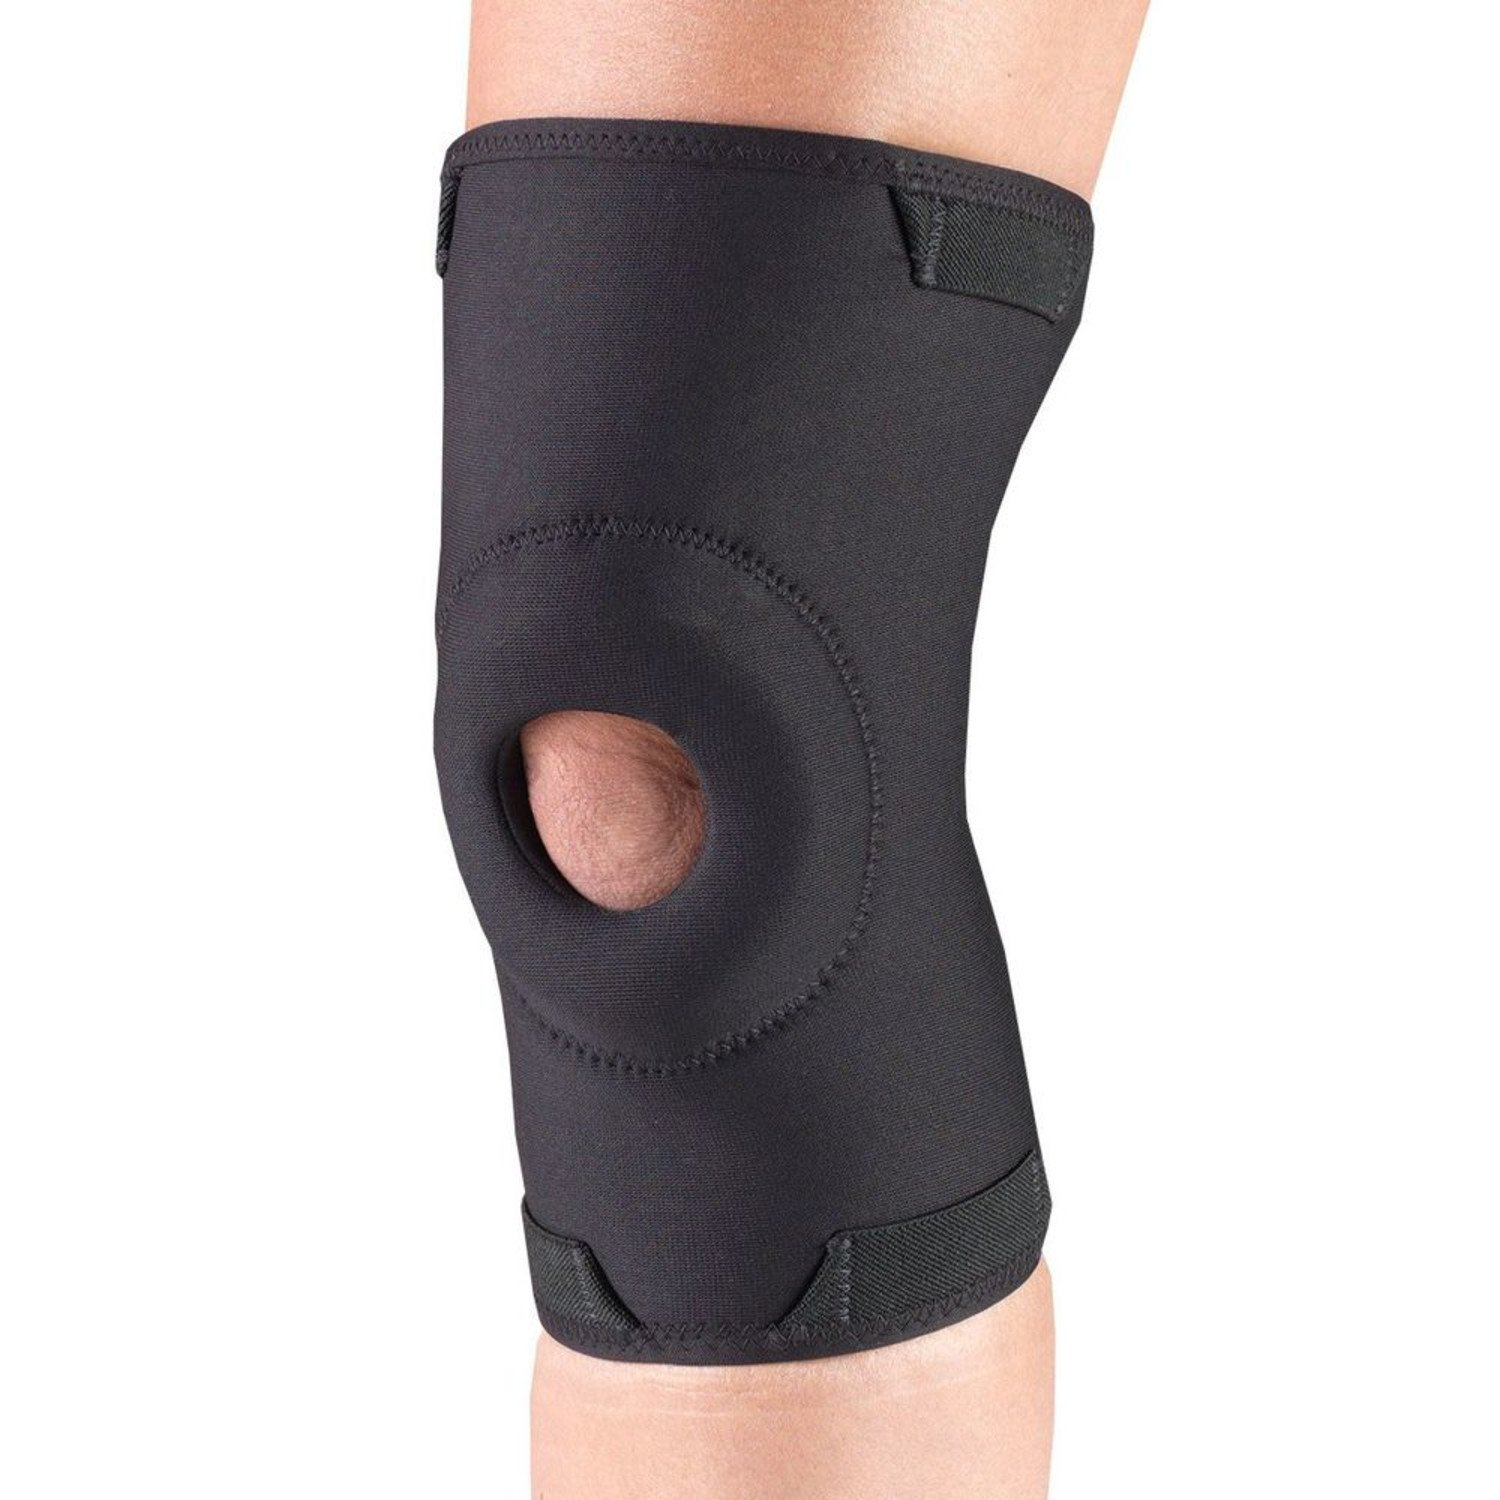 OTC Knee Support, Stabilizer Pad, Orthotex, Small